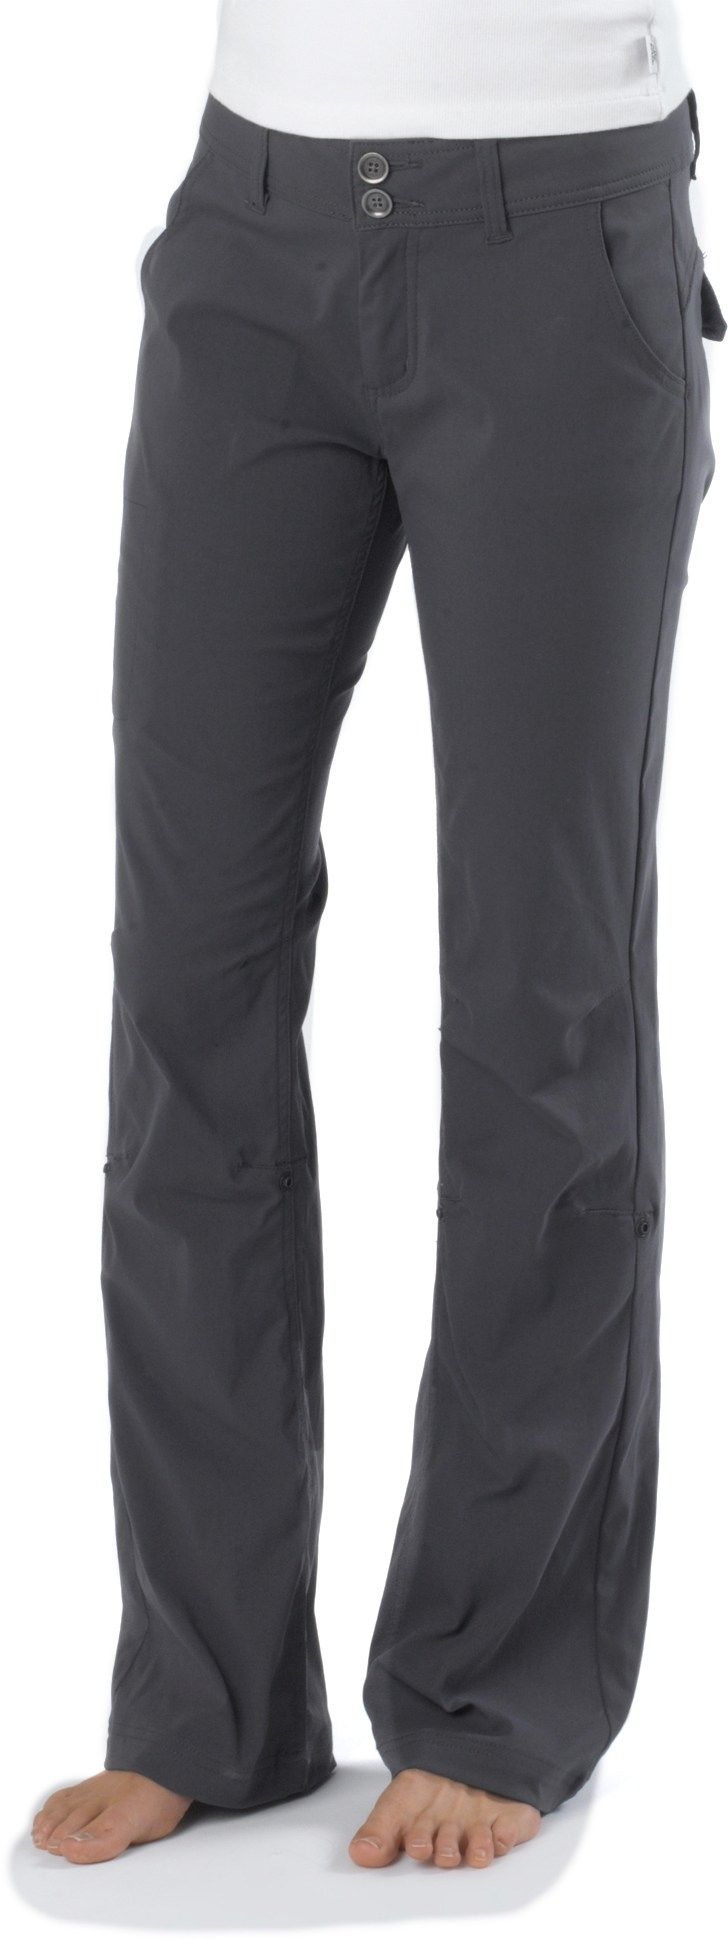 prAna Halle Pants - tougher fabric and cuter fit than your average hiking pant